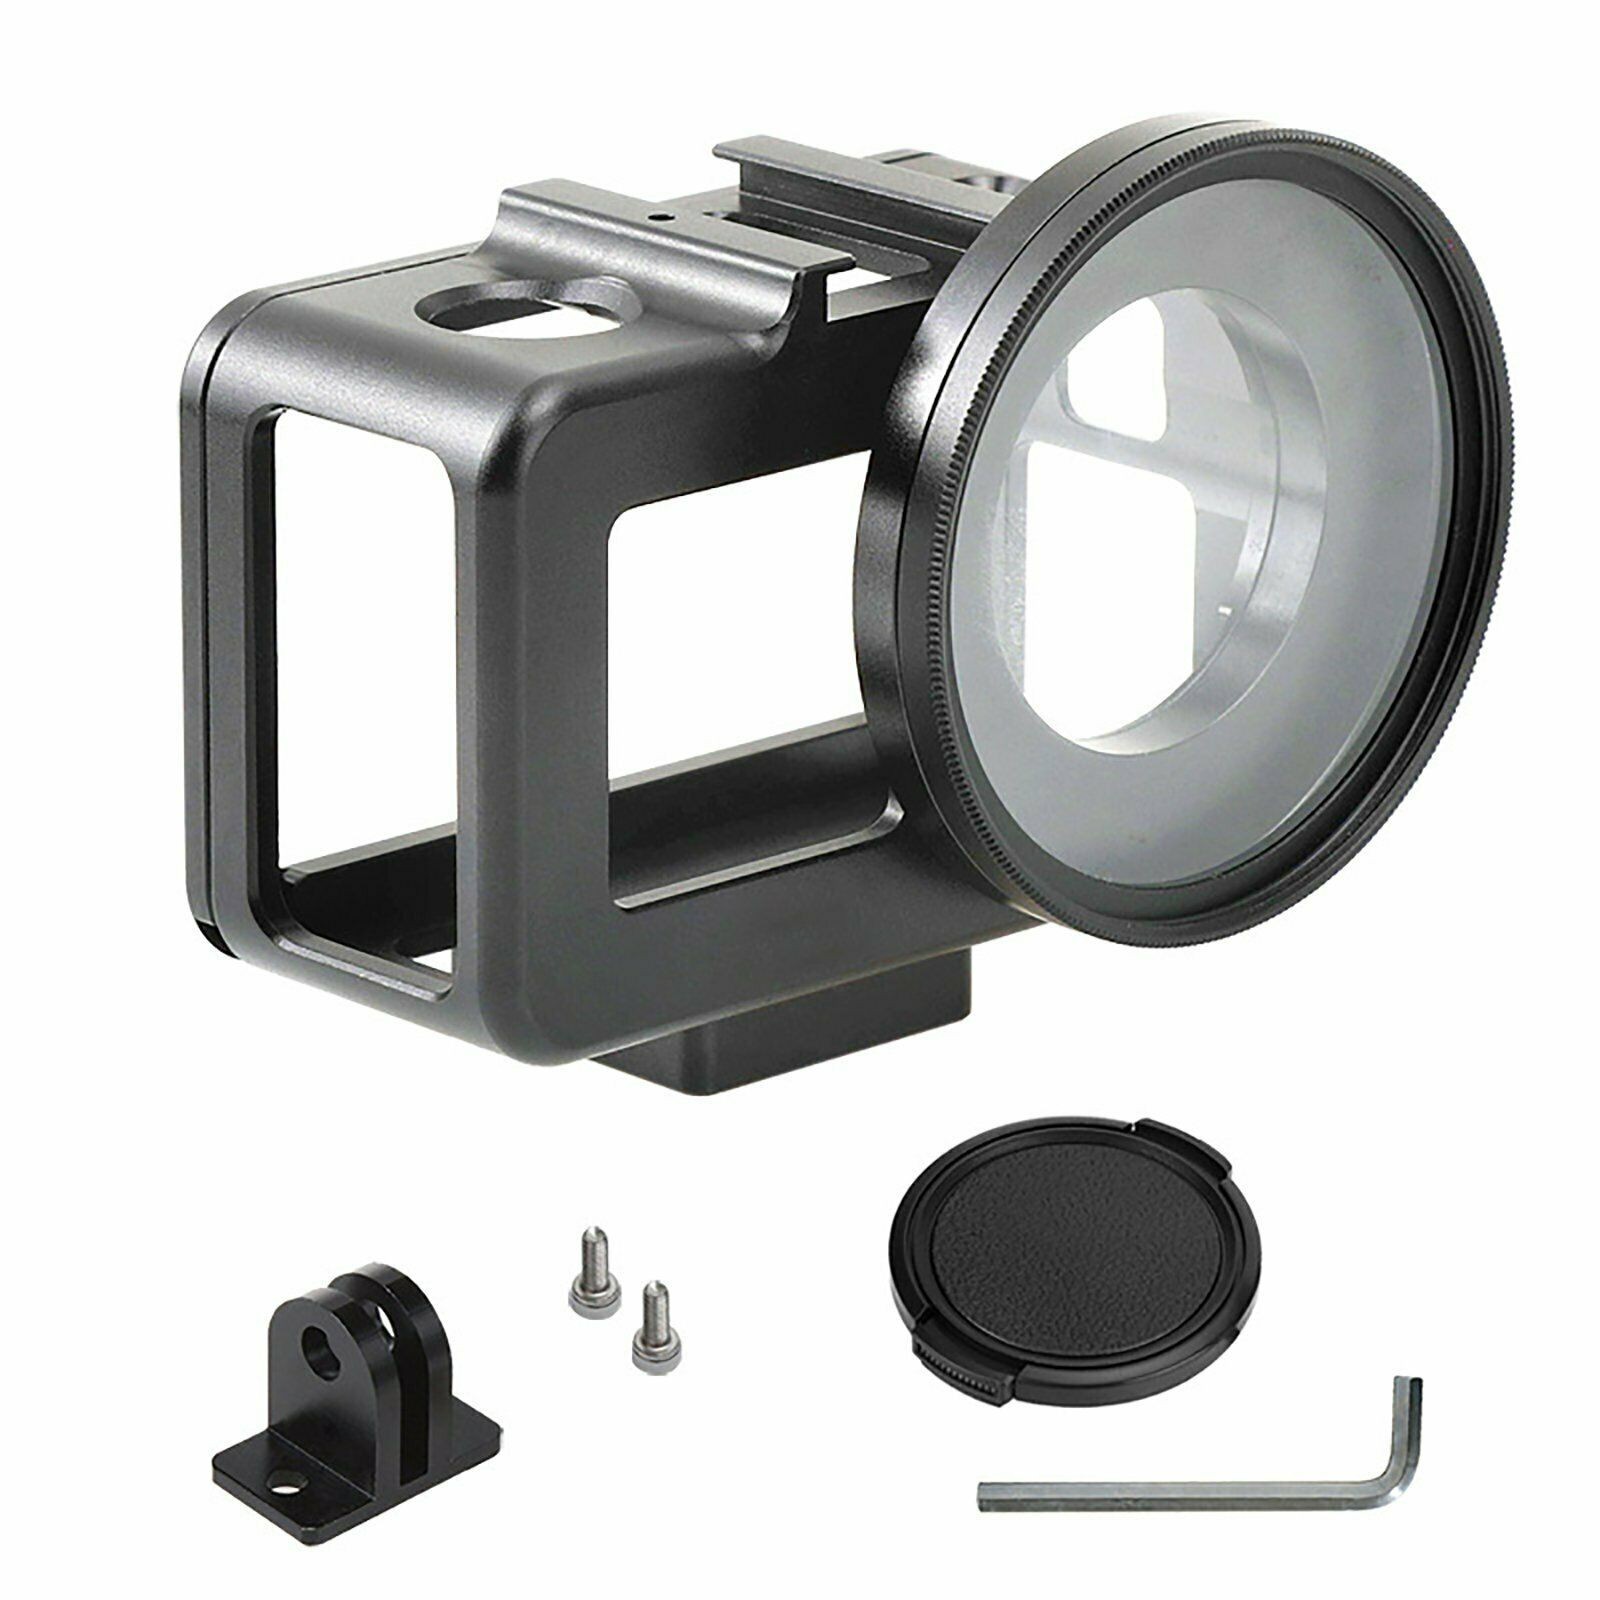 For DJI OSMO Action Cam Metal Rabbit Cage Protective Case Sh